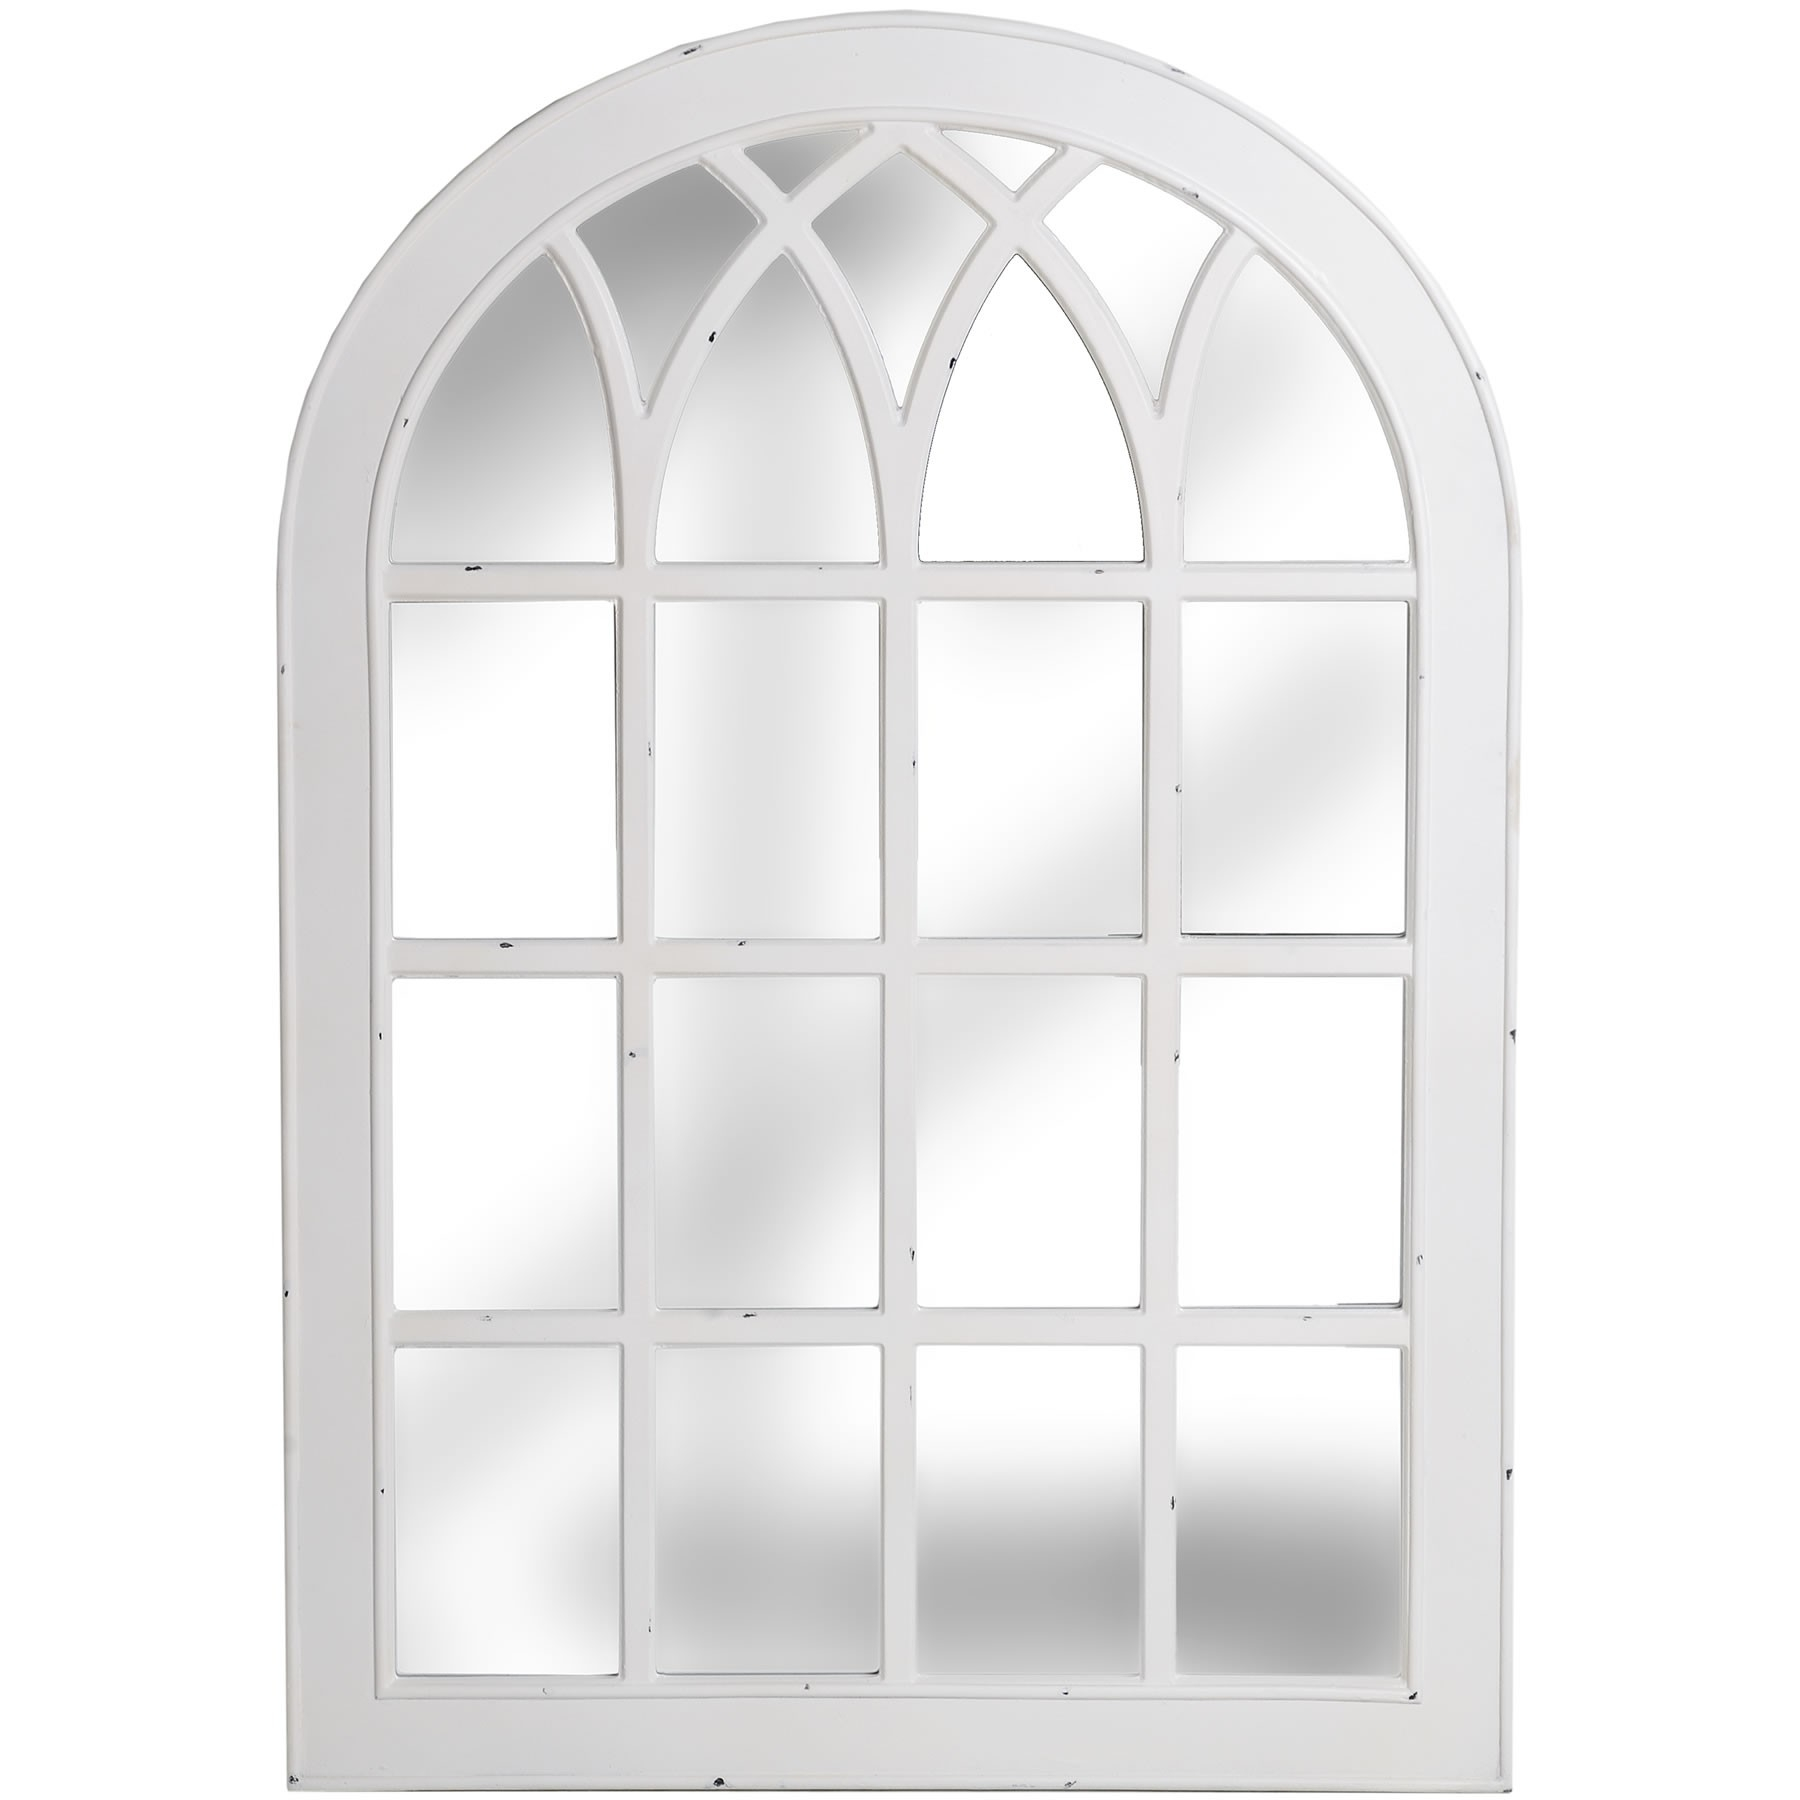 Ideas Design For Arched Window Mirror 19755 Within White Arched Window Mirror (Image 11 of 15)